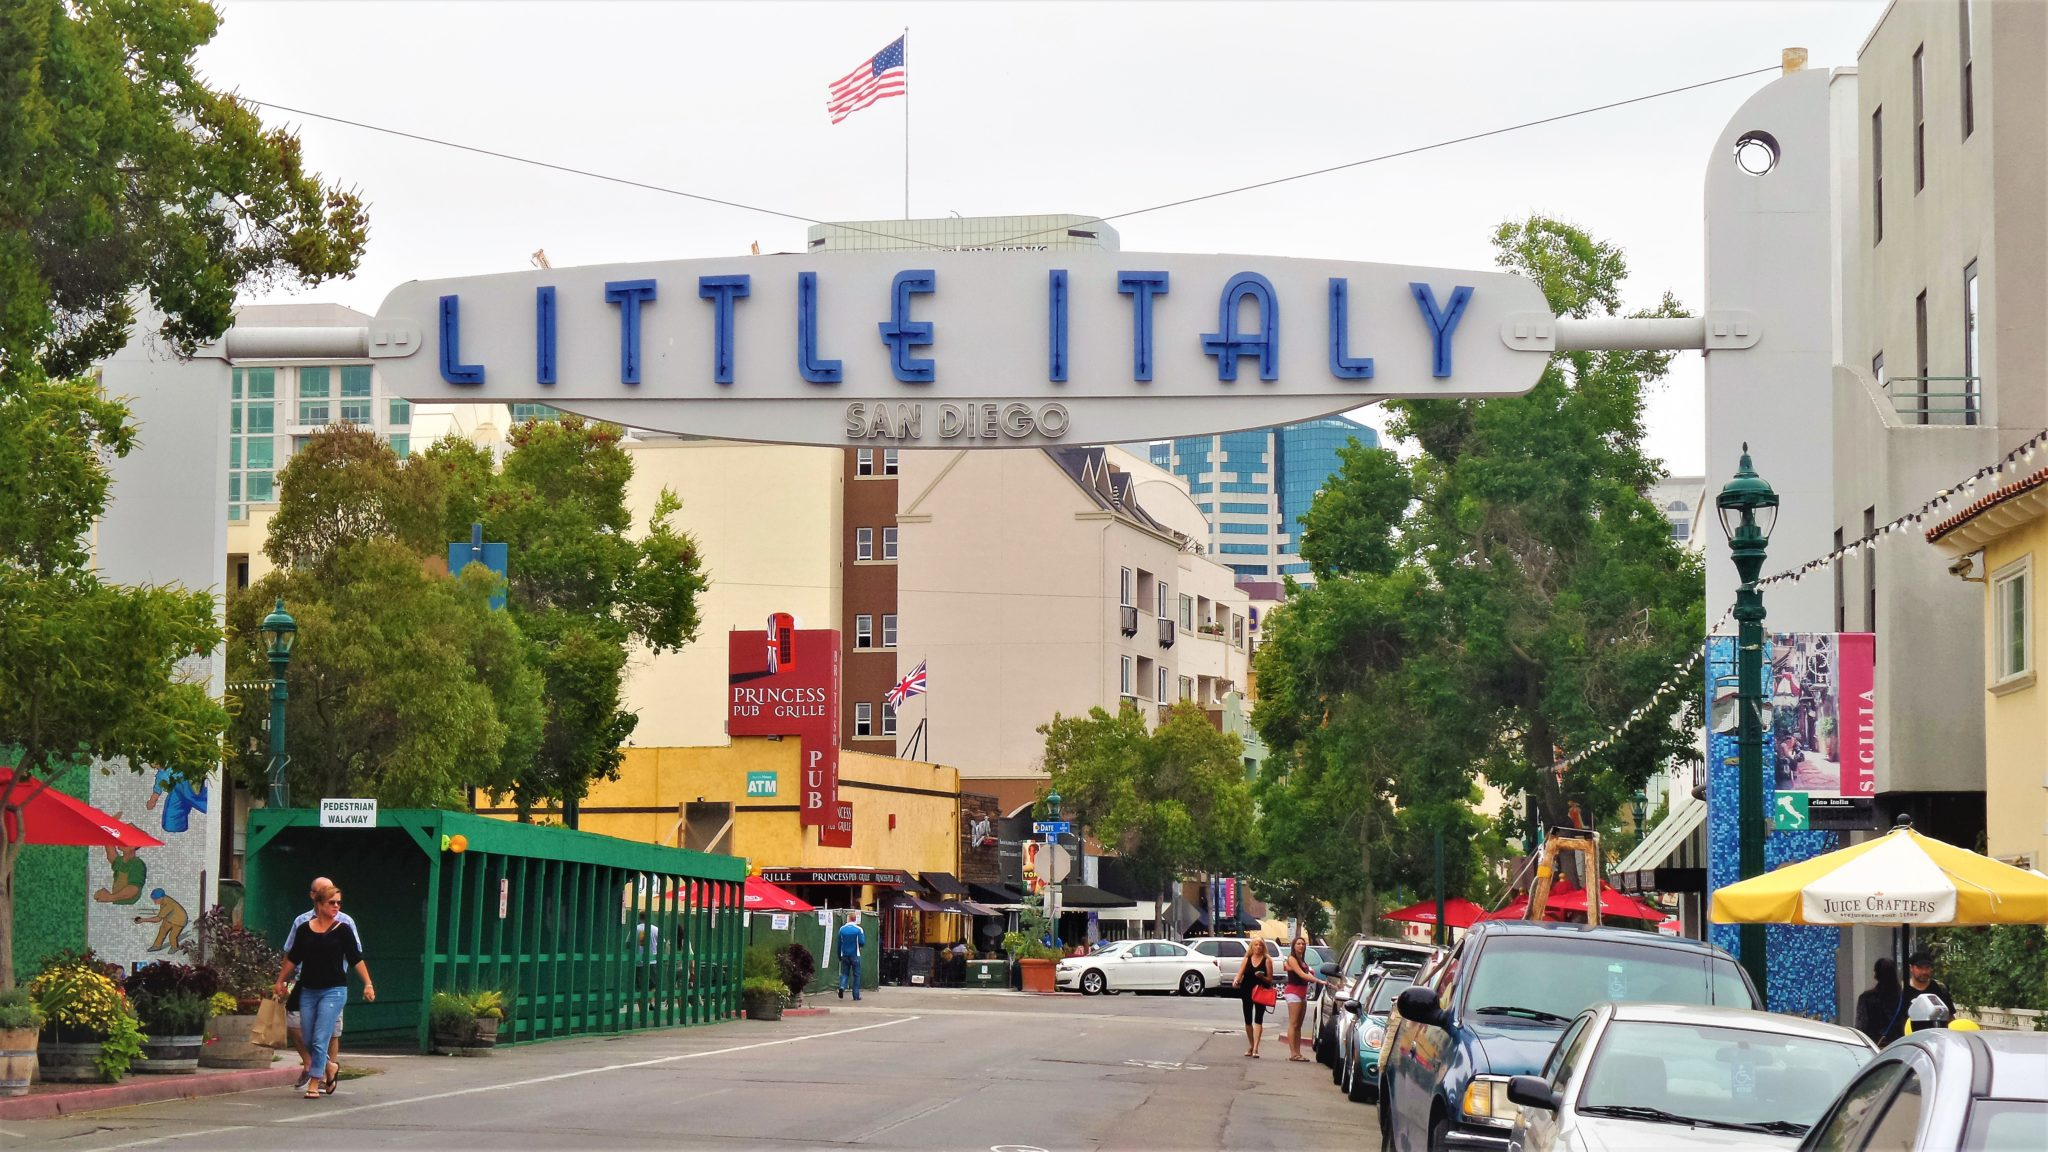 Little Italy sign, things to do in San Diego, California